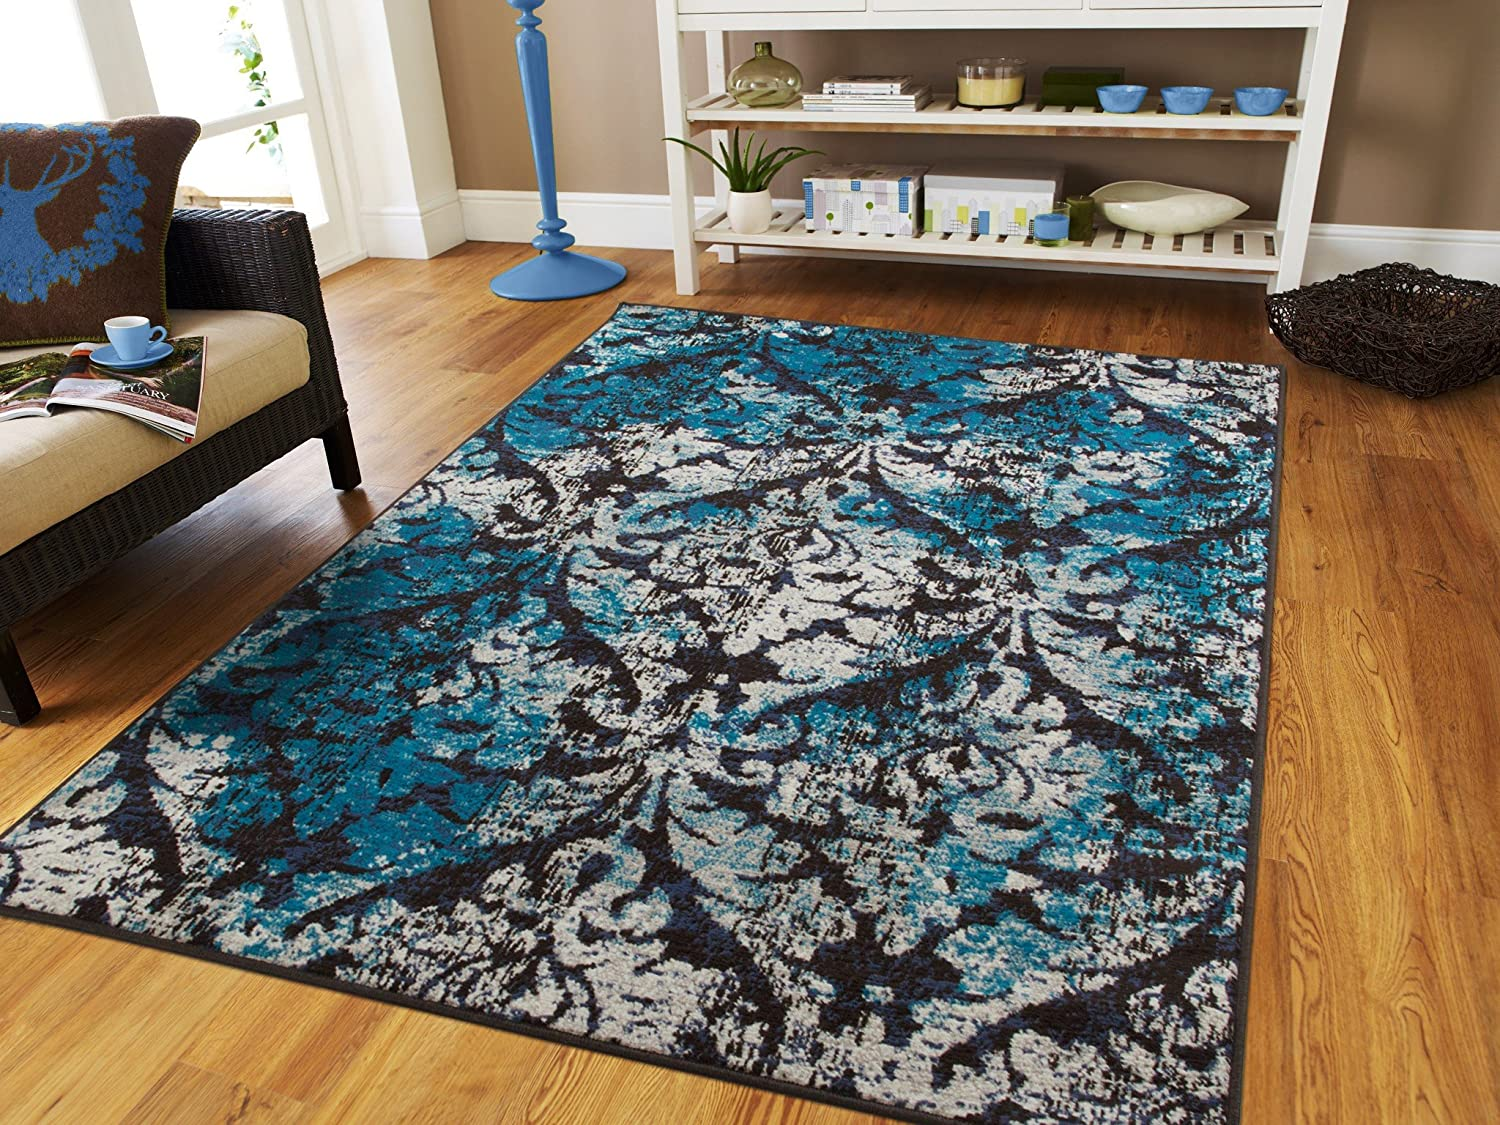 Amazon Com Luxury Contemporary Rugs For Living Room Black Blue Gray Ivory 5x8 Vintage Distressed Modern Dining Rooms 5x7 Blues Grey Nice Rug Bedroom Furniture Decor